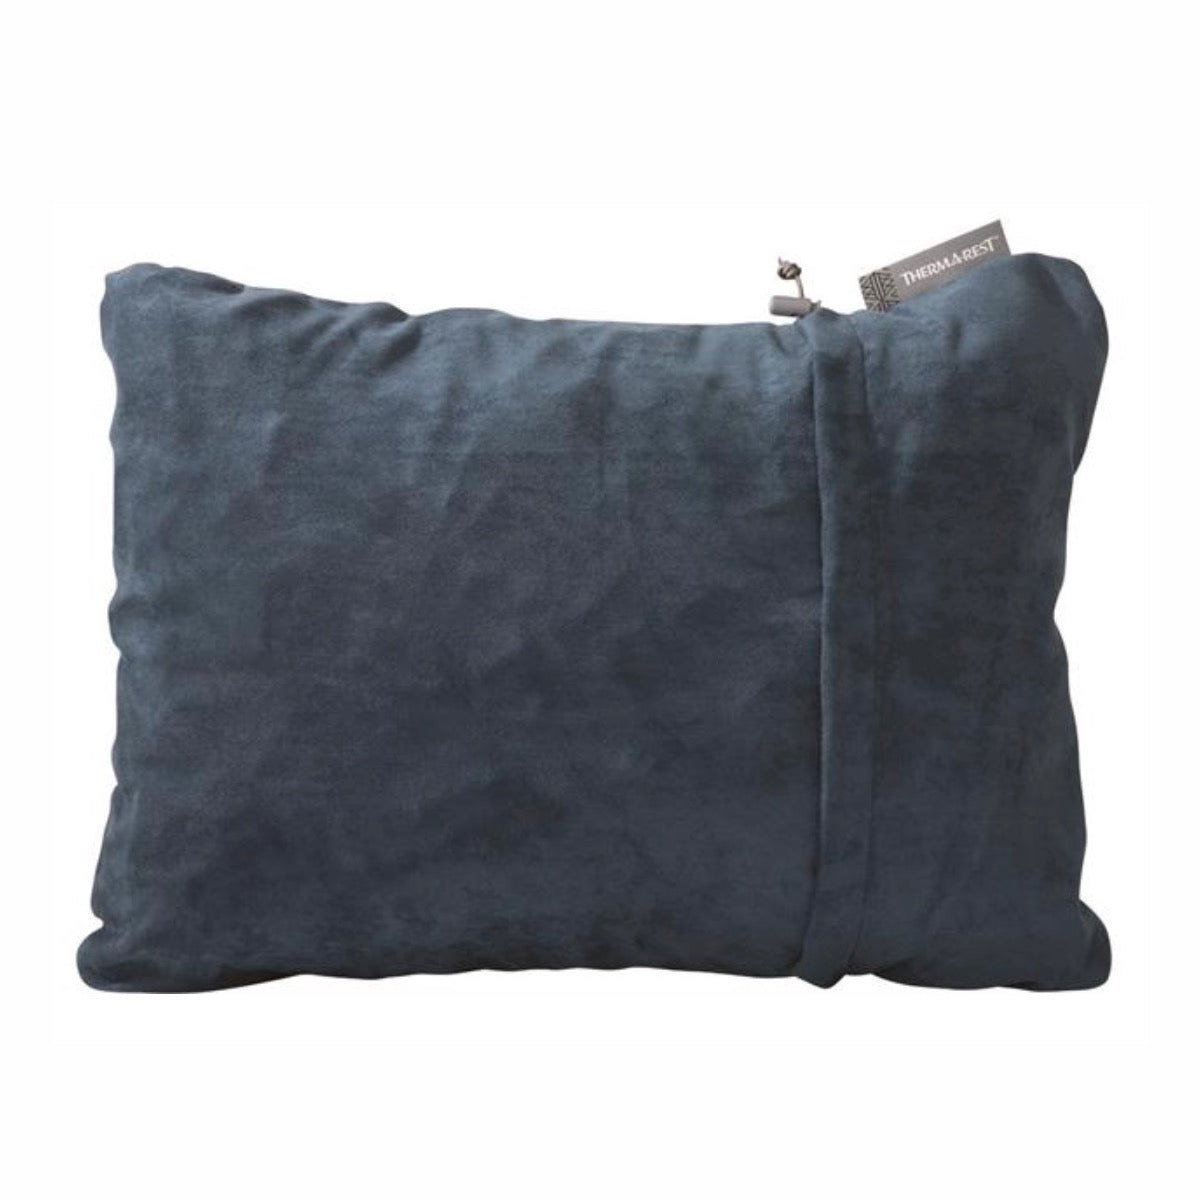 THERM-A-REST COMPRESSIBLE PILLOW - TURPUTE - DENIM (LARGE)